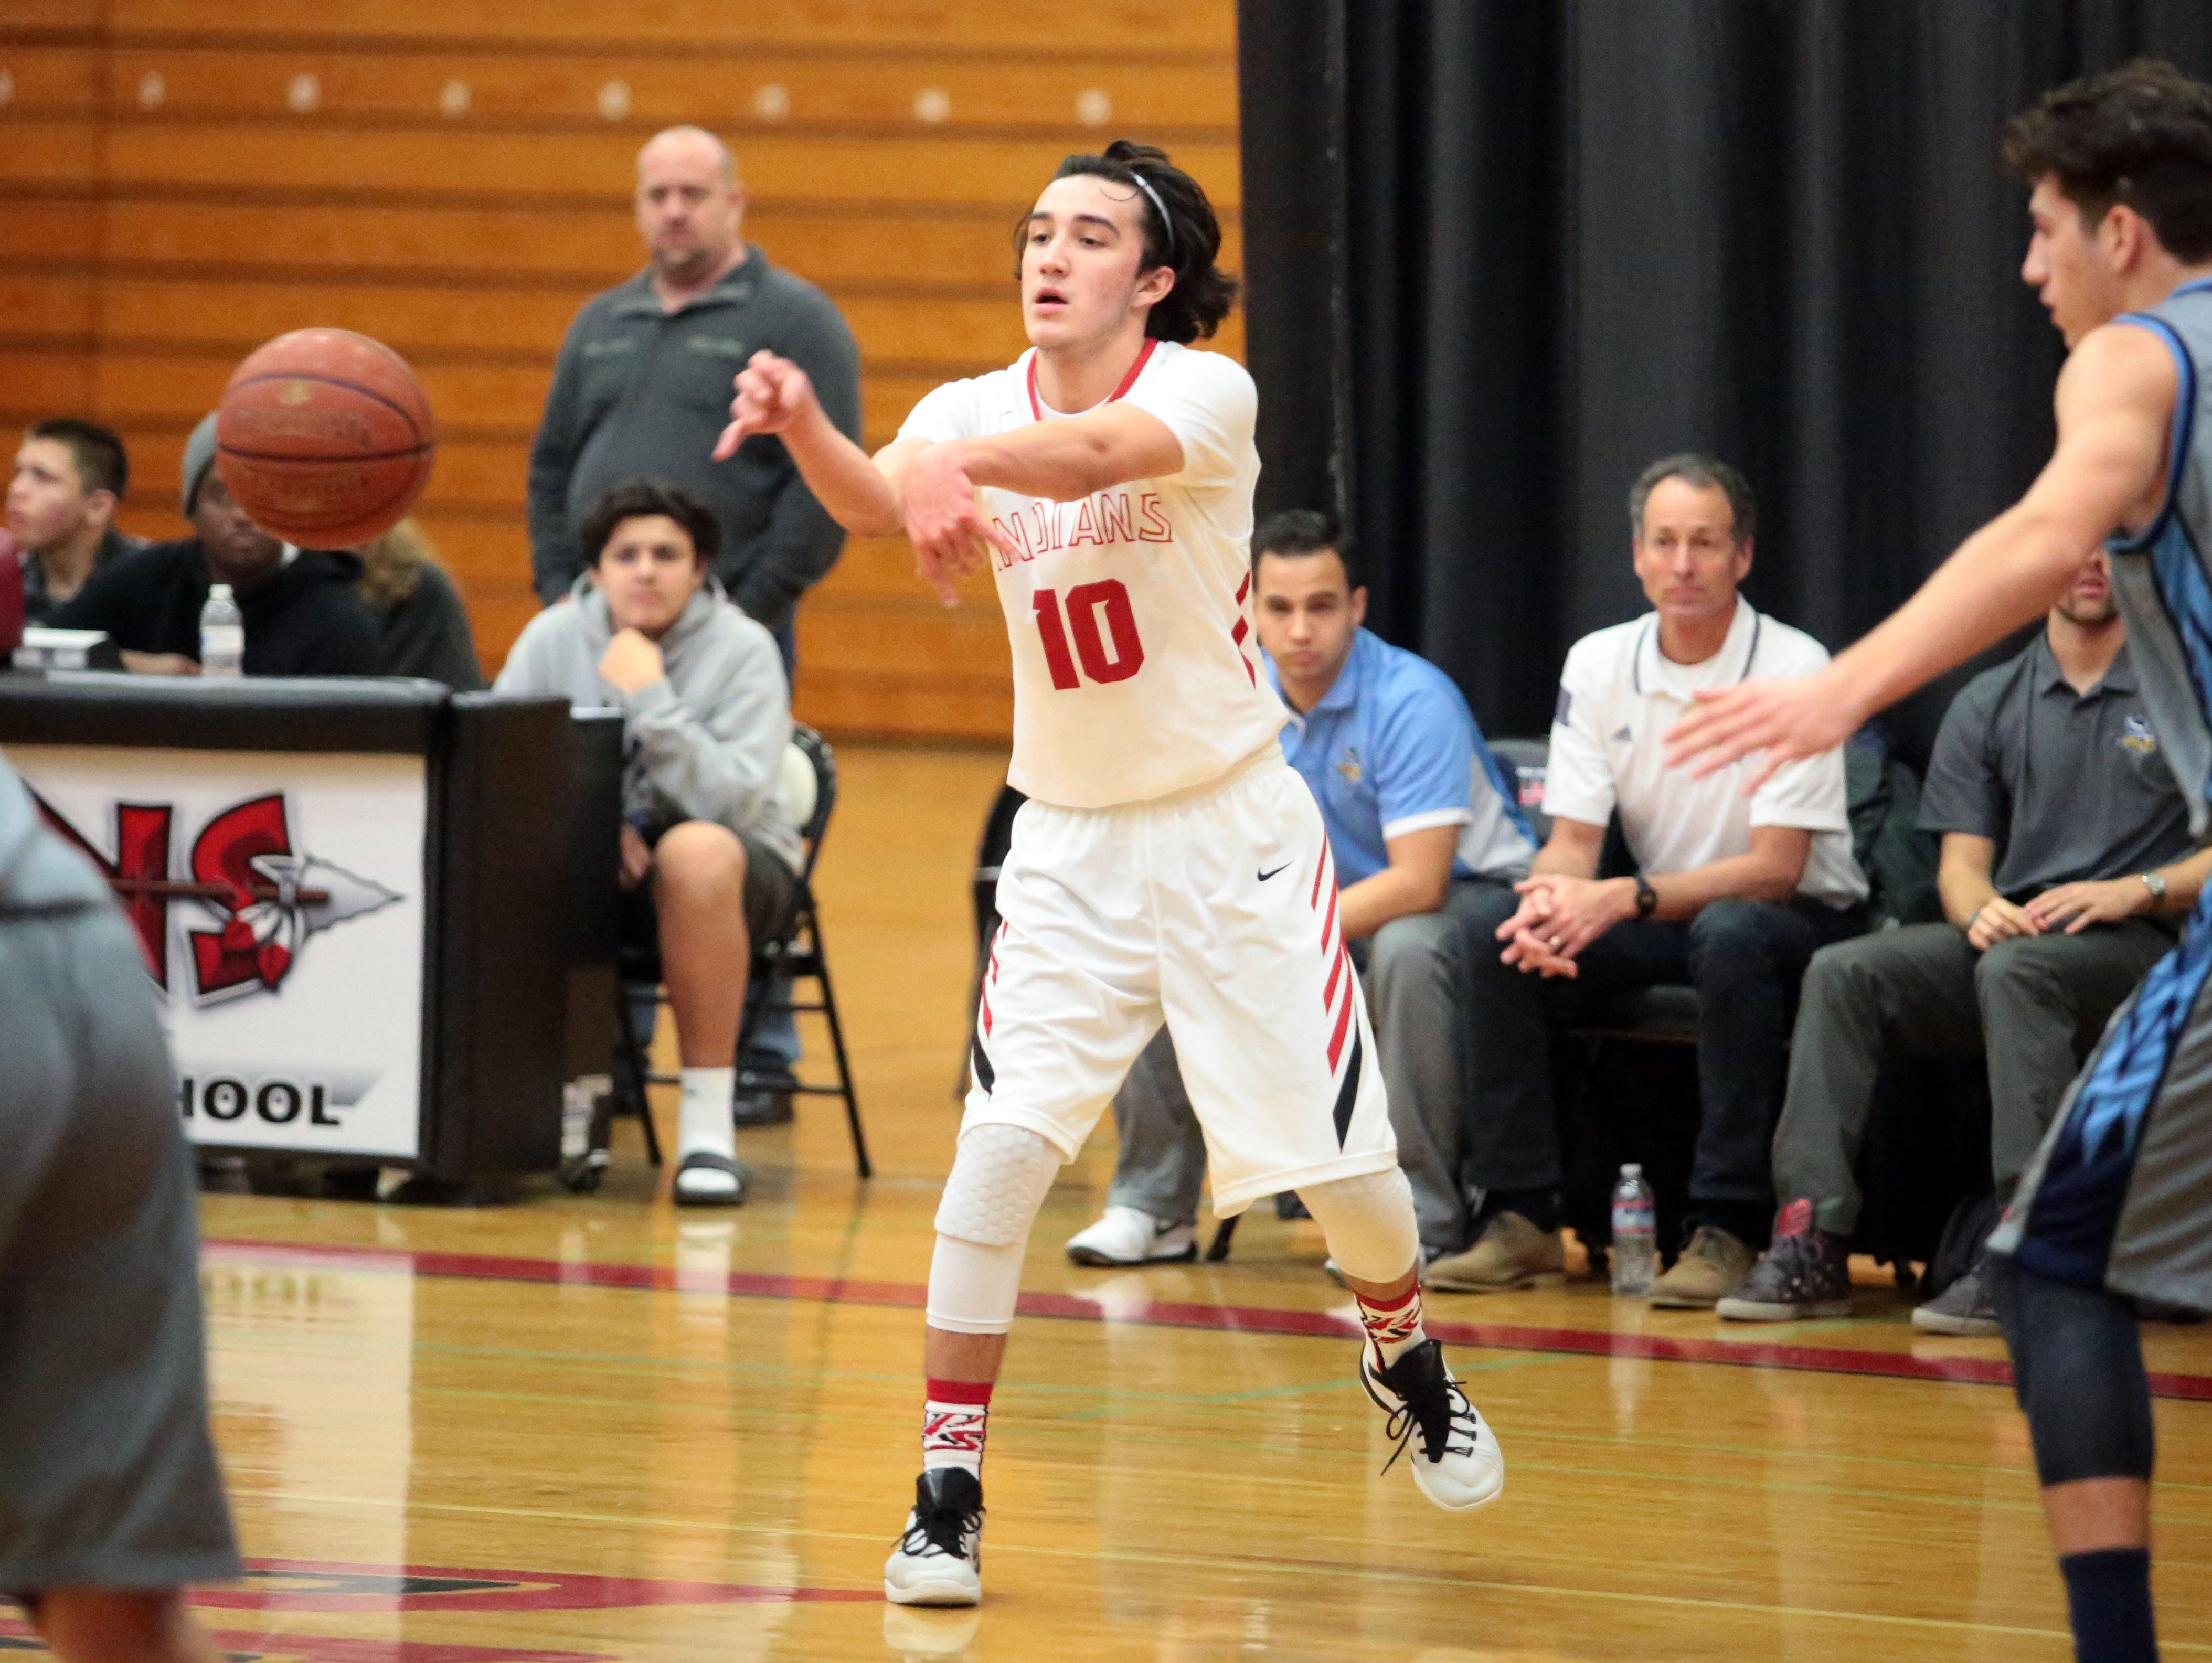 Palm Springs and Marina basketball action on Saturday during the Desert Showcase in Palm Springs.